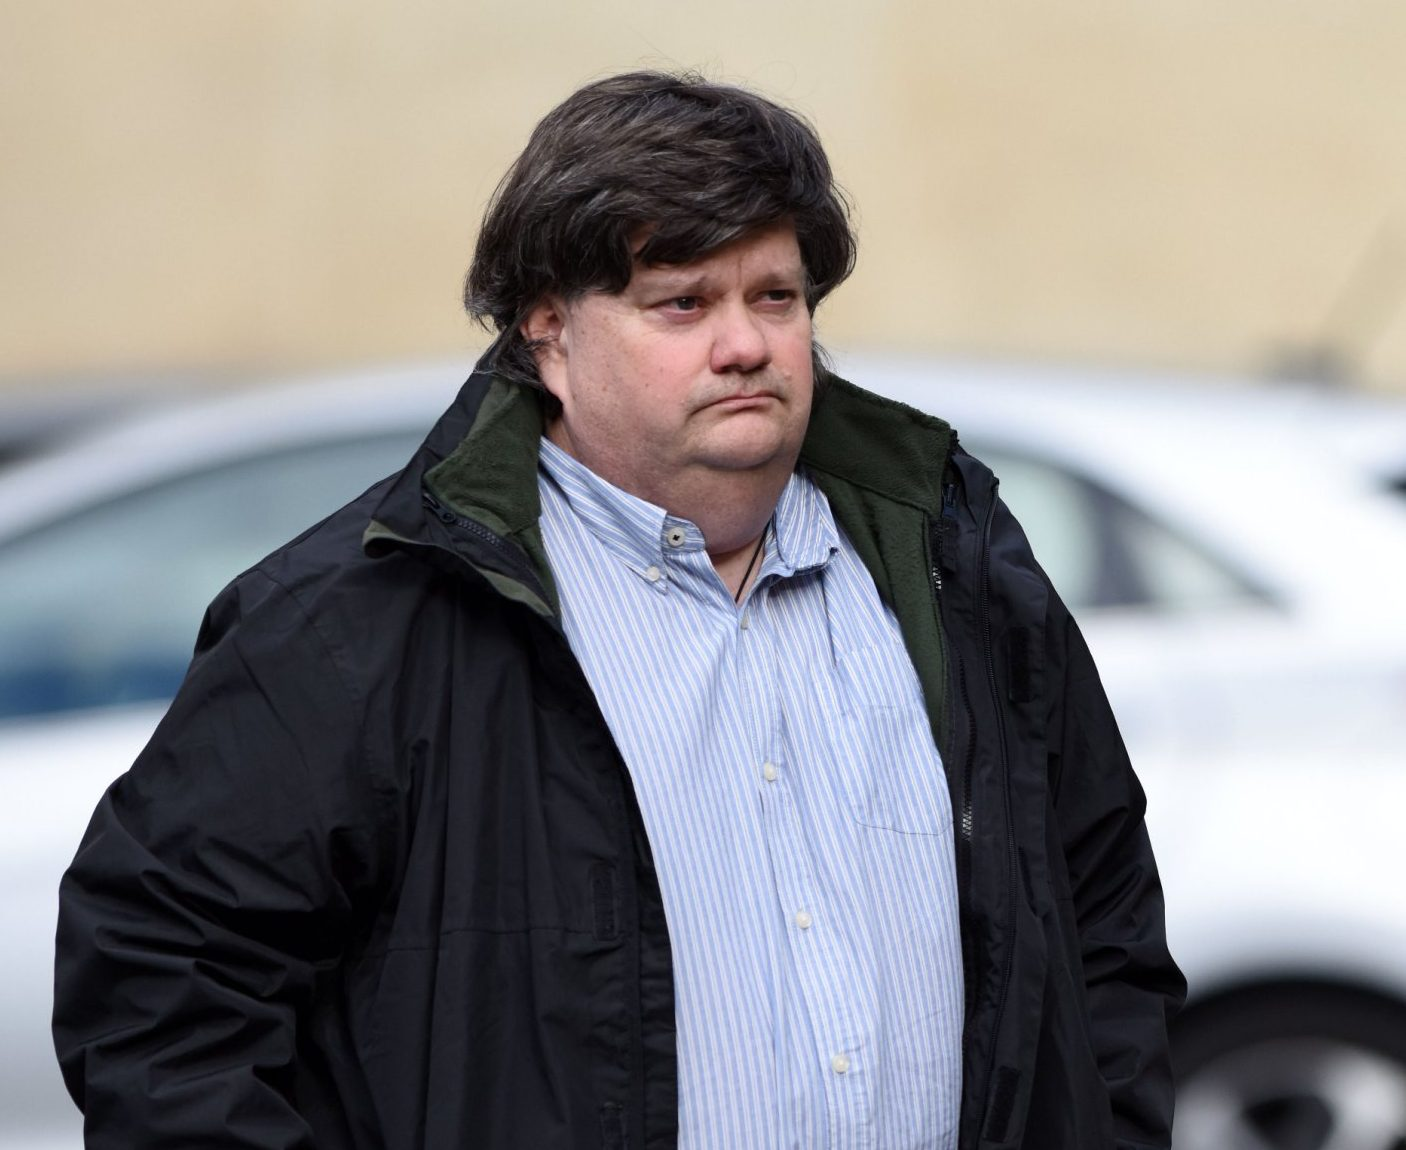 Pics from Caters News - (PICTURED: Carl Beech at Worcester Crown Court today 8/3/18.)- Carl Beech at Worcester Crown Court where he faces possession of indecent images of children charge among various others. Carl Beechs real identity was banned from being reported since he first claimed in 2012 he was sexually abused by politicians and other high-profile figures in the 1970s. Yesterday a judge lifted an anonymity order as the 50-year-old appeared at Newcastle Crown Court via videolink accused of perverting the course of justice and fraud. SEE CATERS COPY.